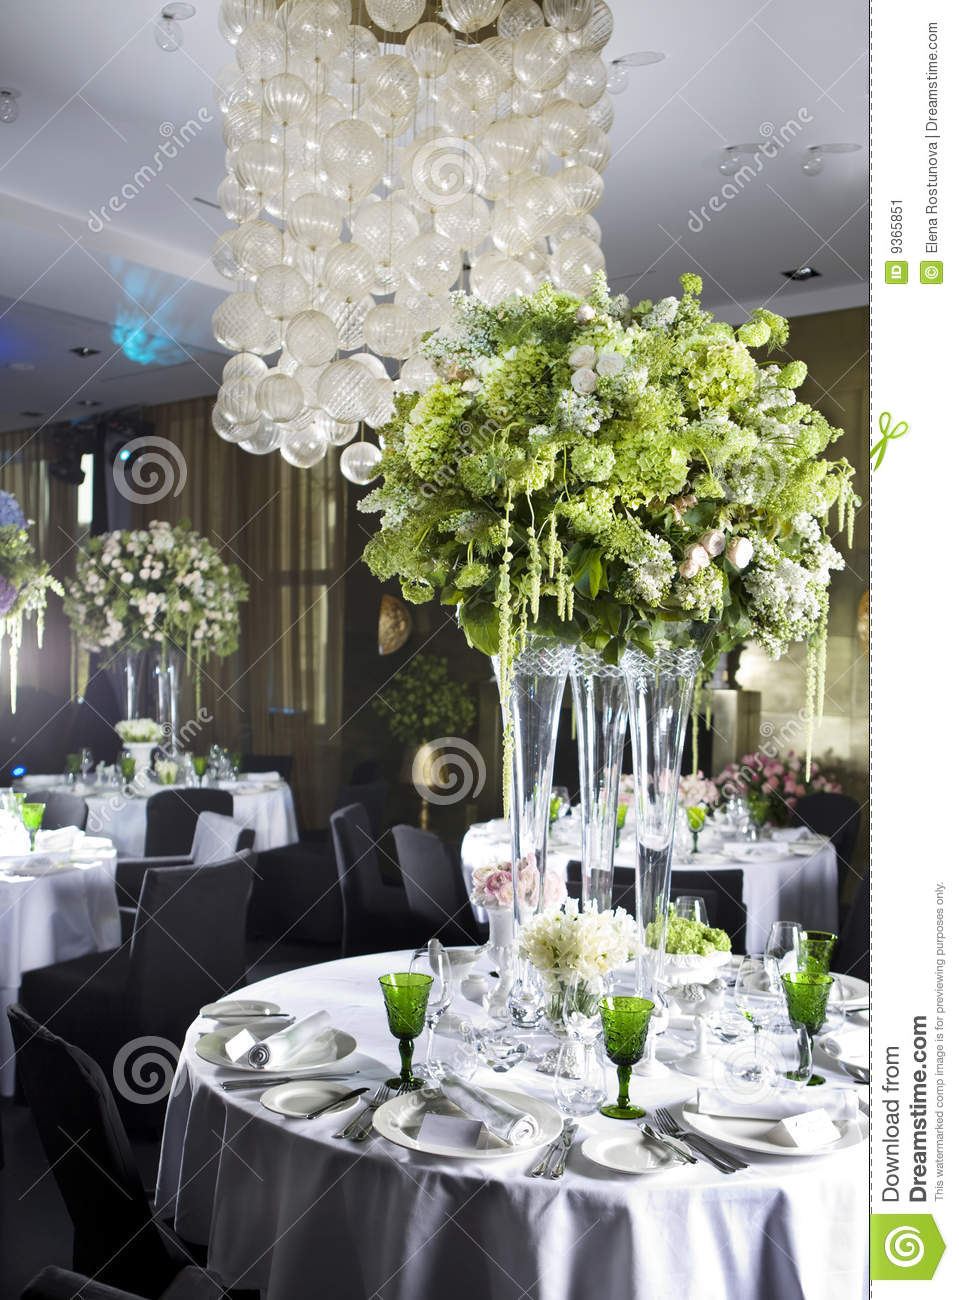 Decoration Dining Table In Restaurant Stock Image Image